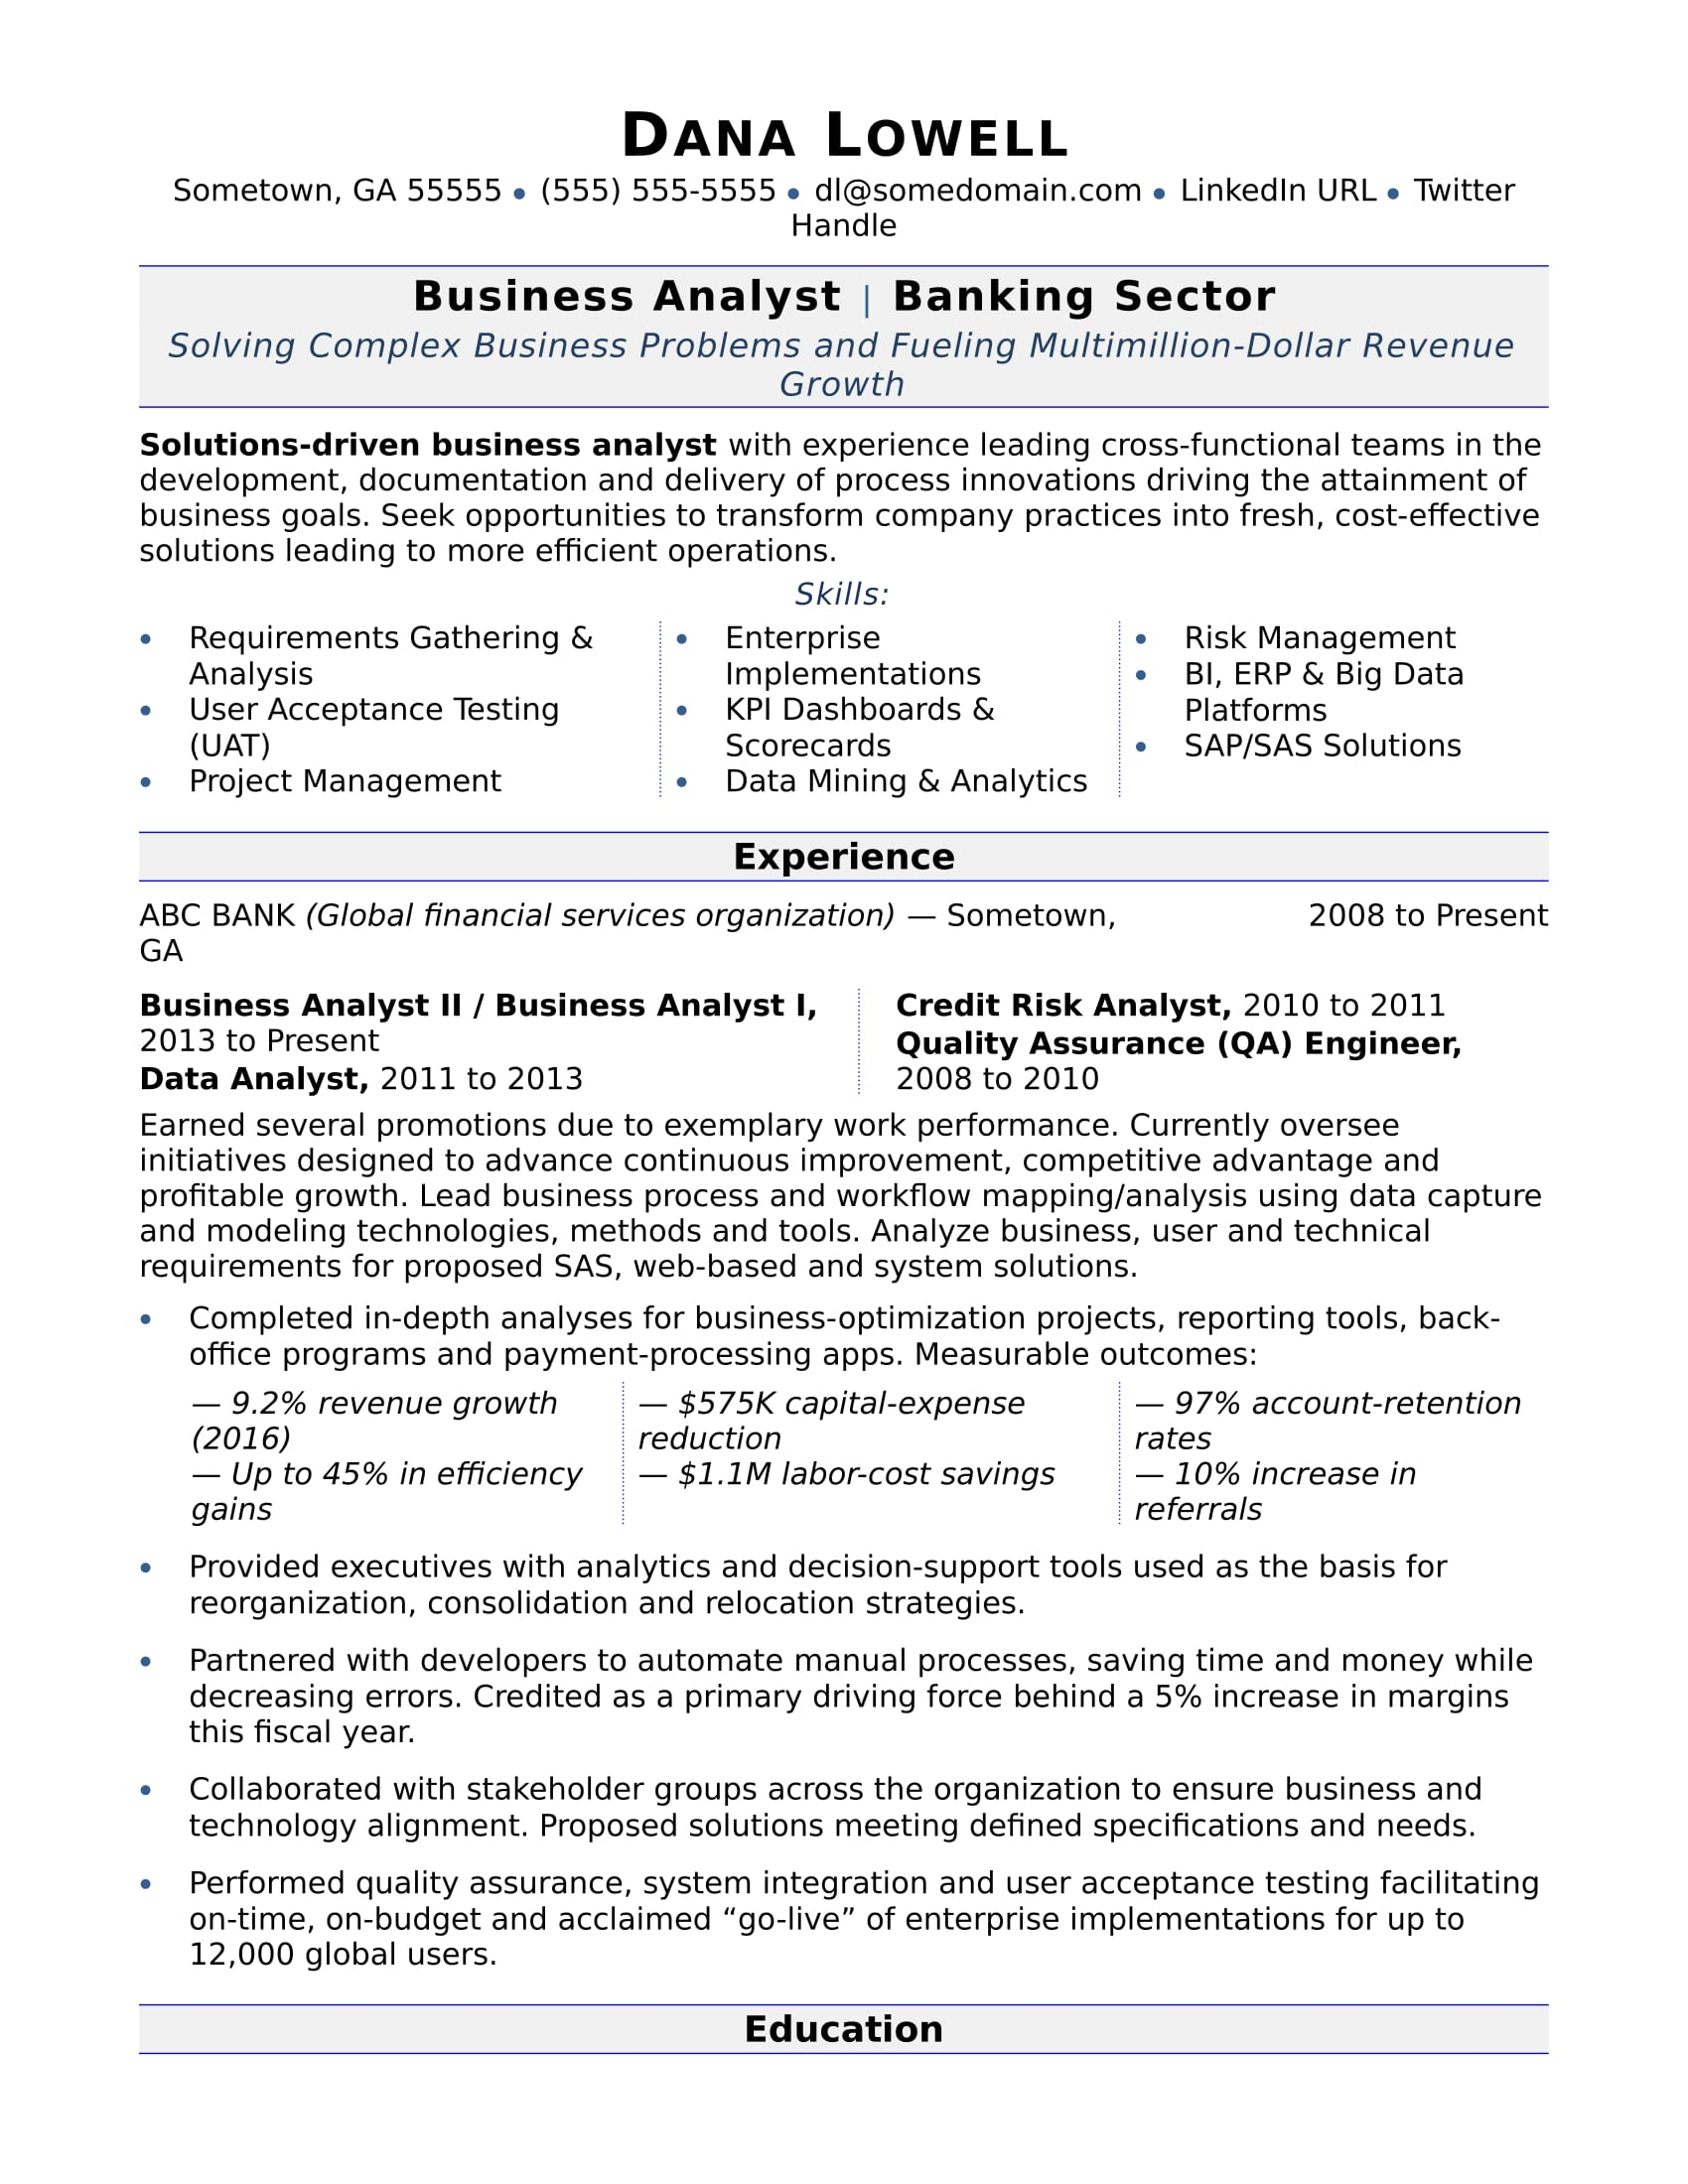 Business Analyst Resume Sample  Bank Resume Template